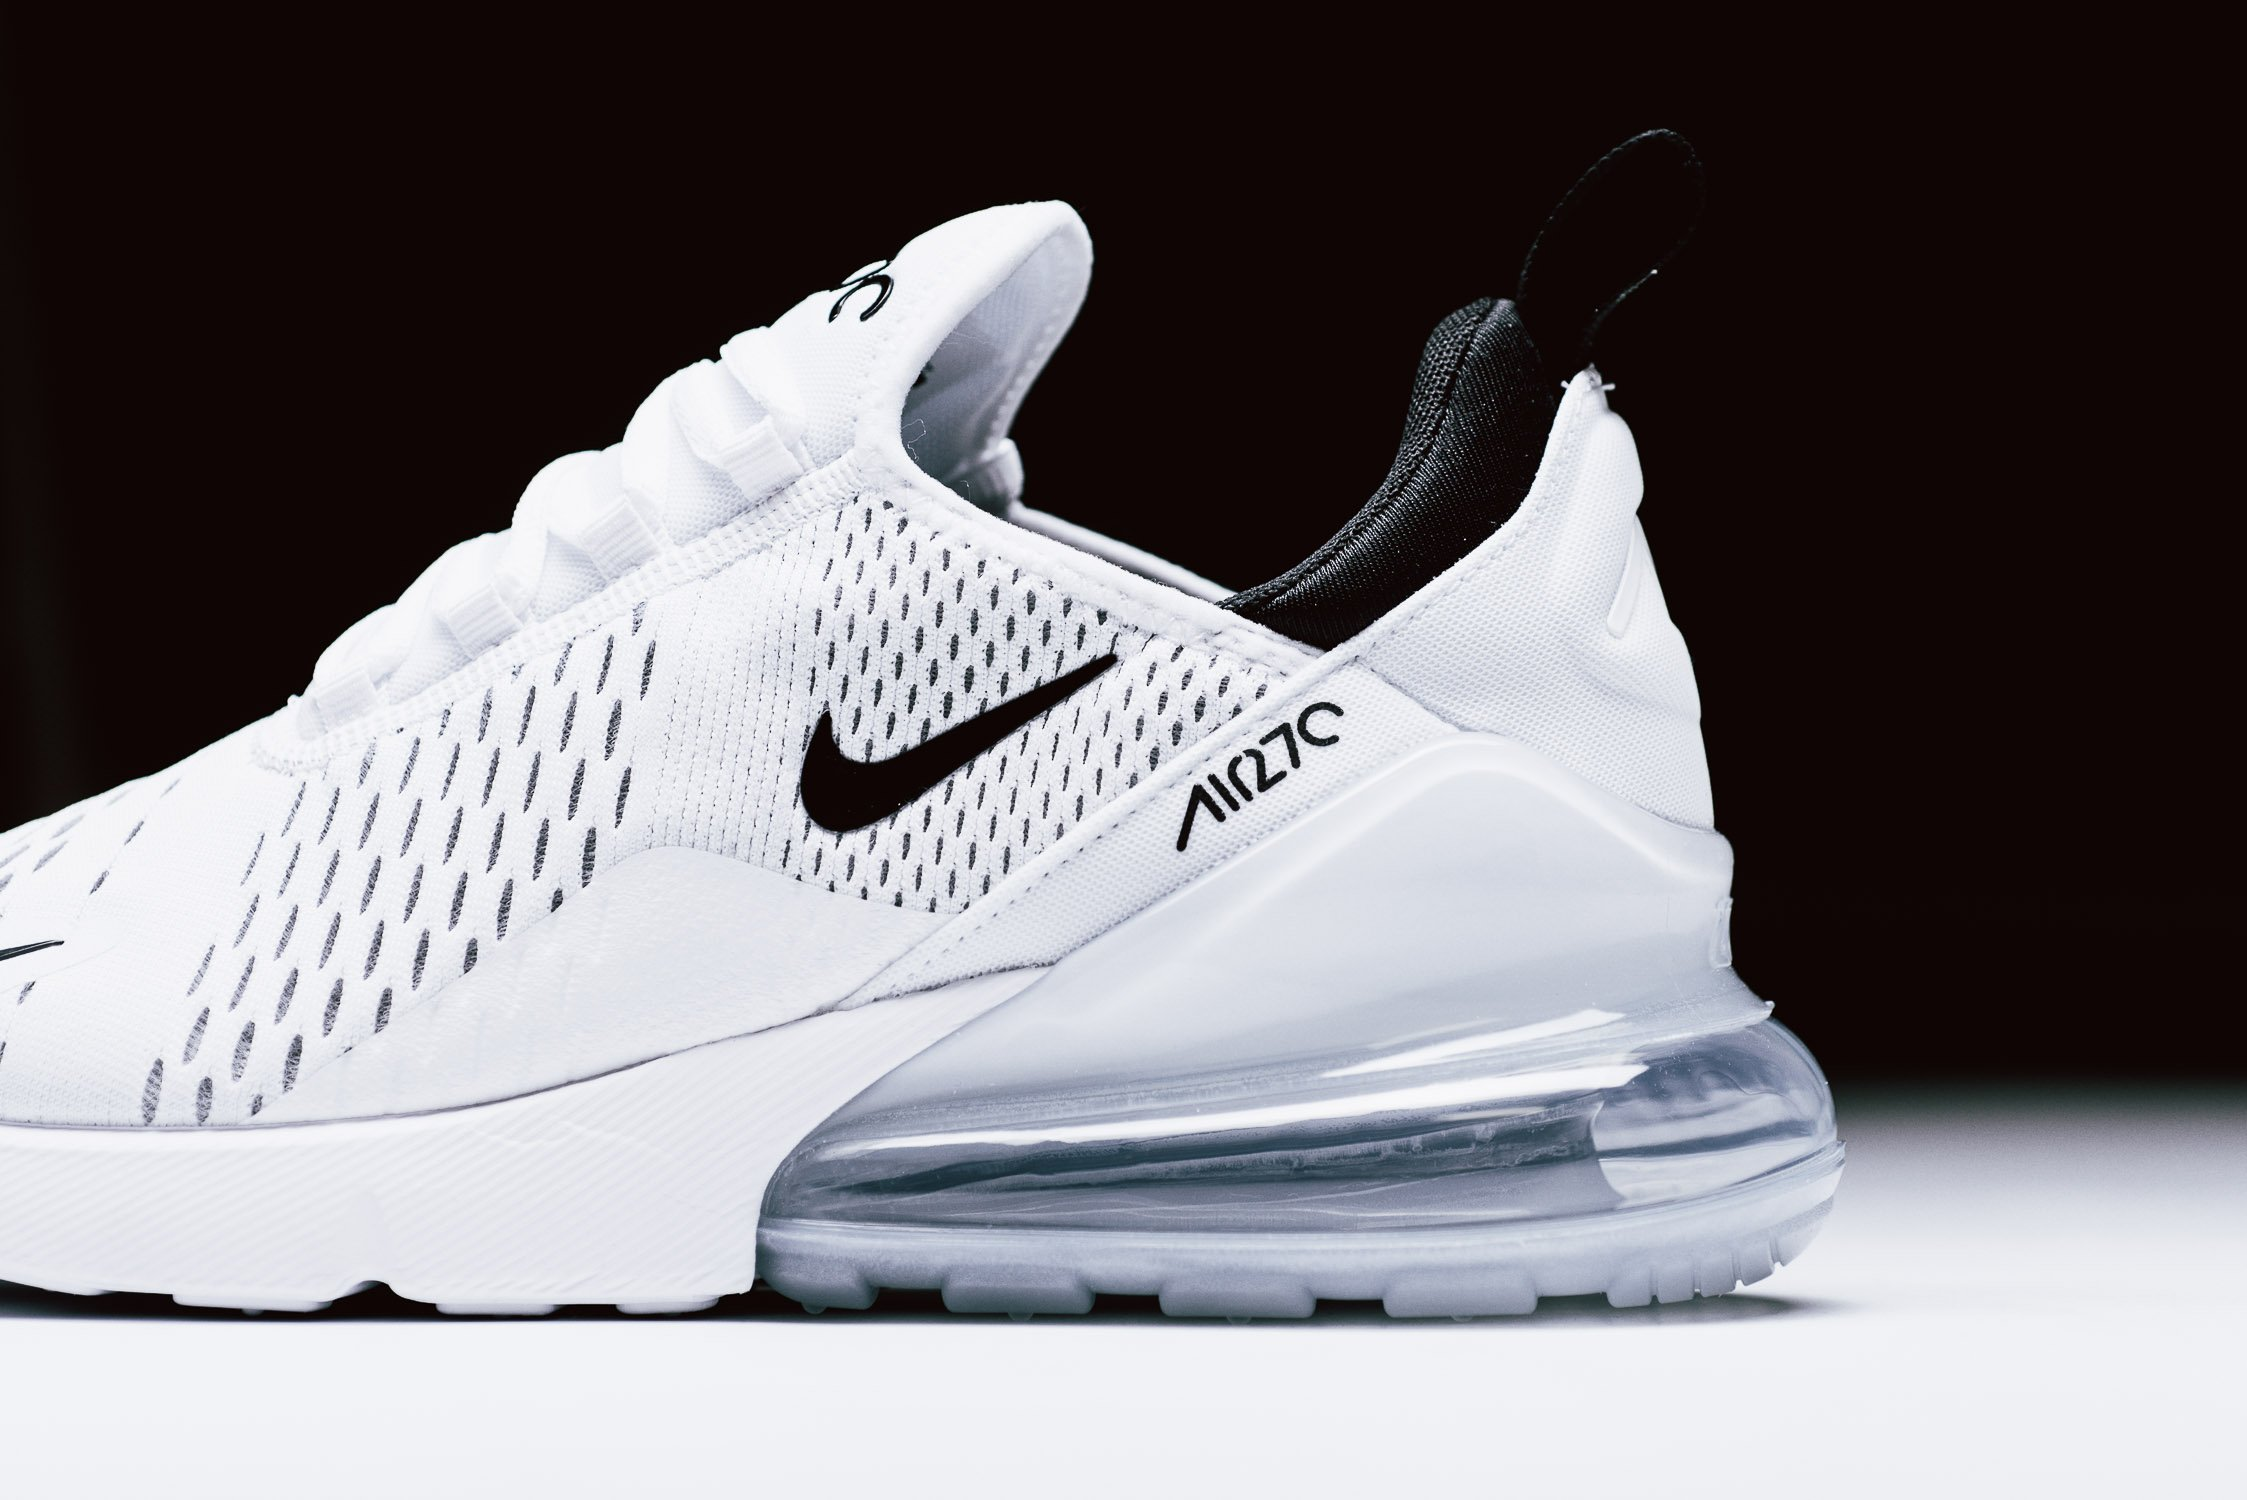 eec35e84 Nike Air Max 270 White Black | AH8050-100 - True Looks